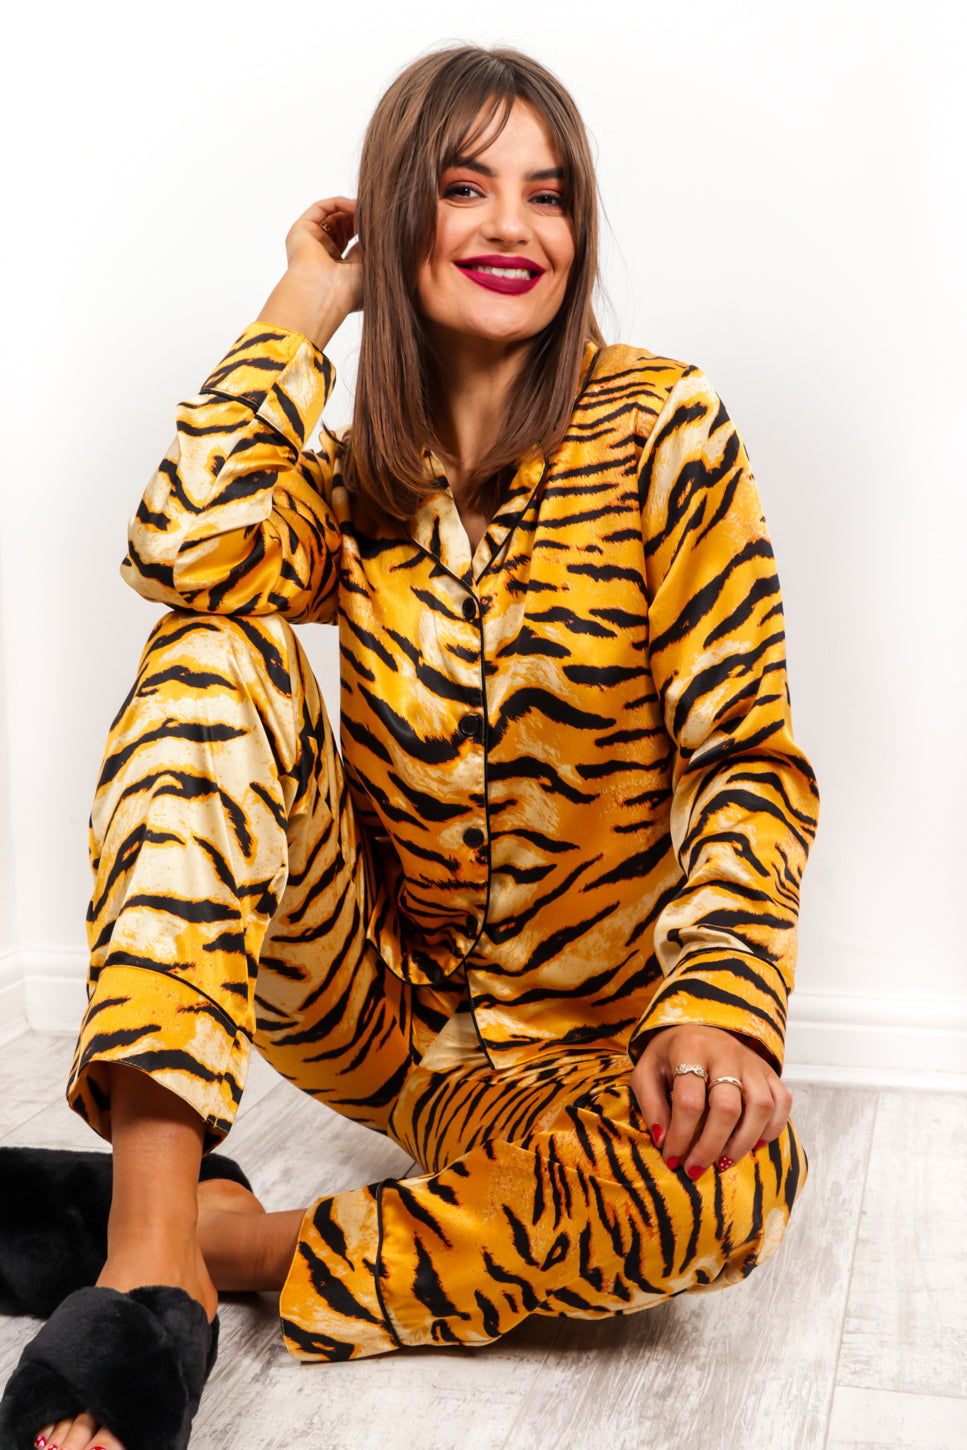 Snooze Button - Tiger Print Pyjama Set